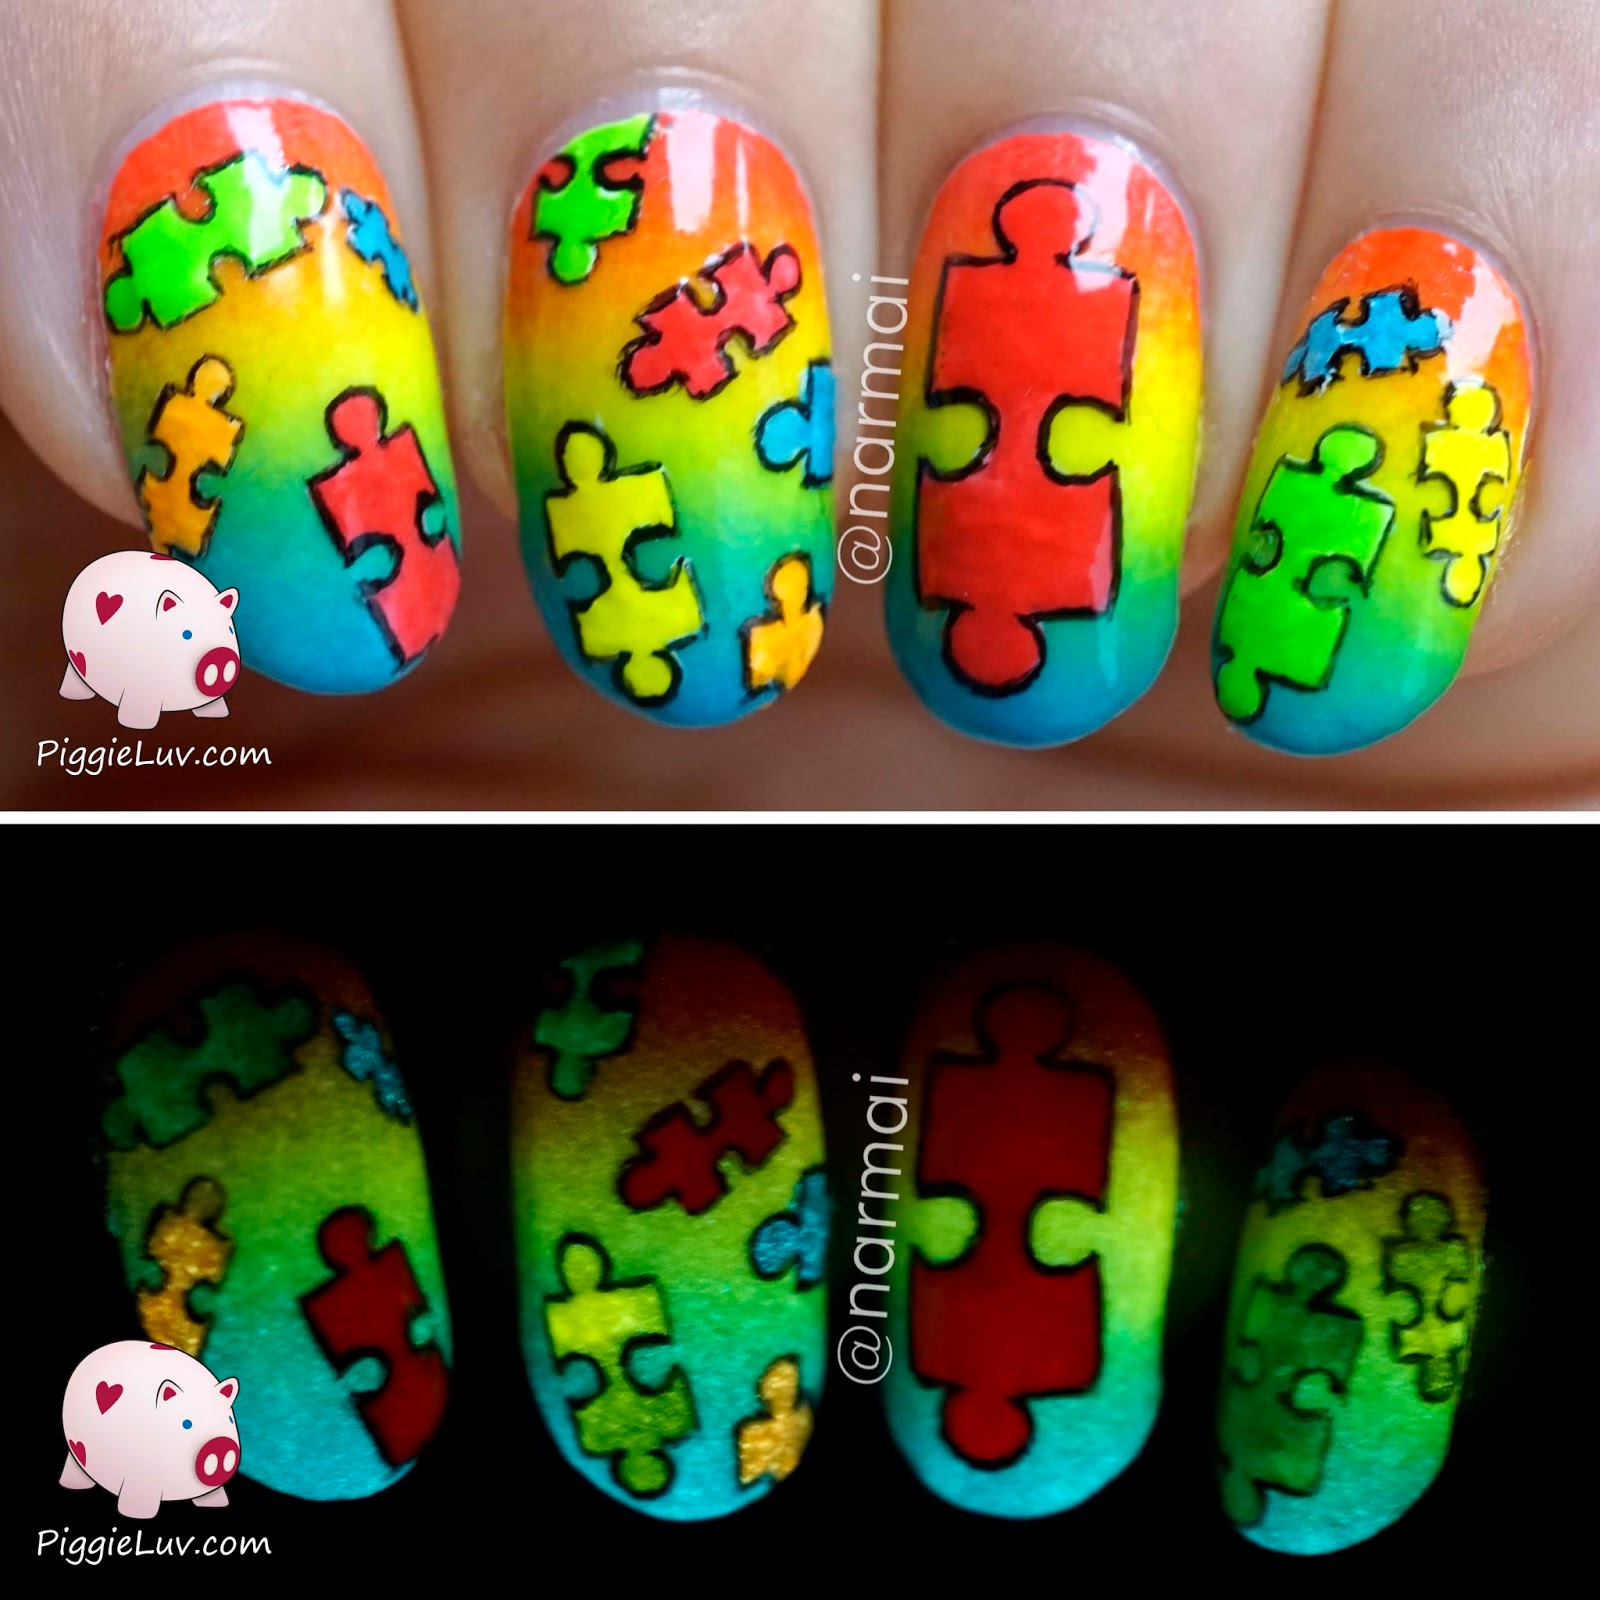 Piggieluv autism awareness nail art autism awareness nail art prinsesfo Images